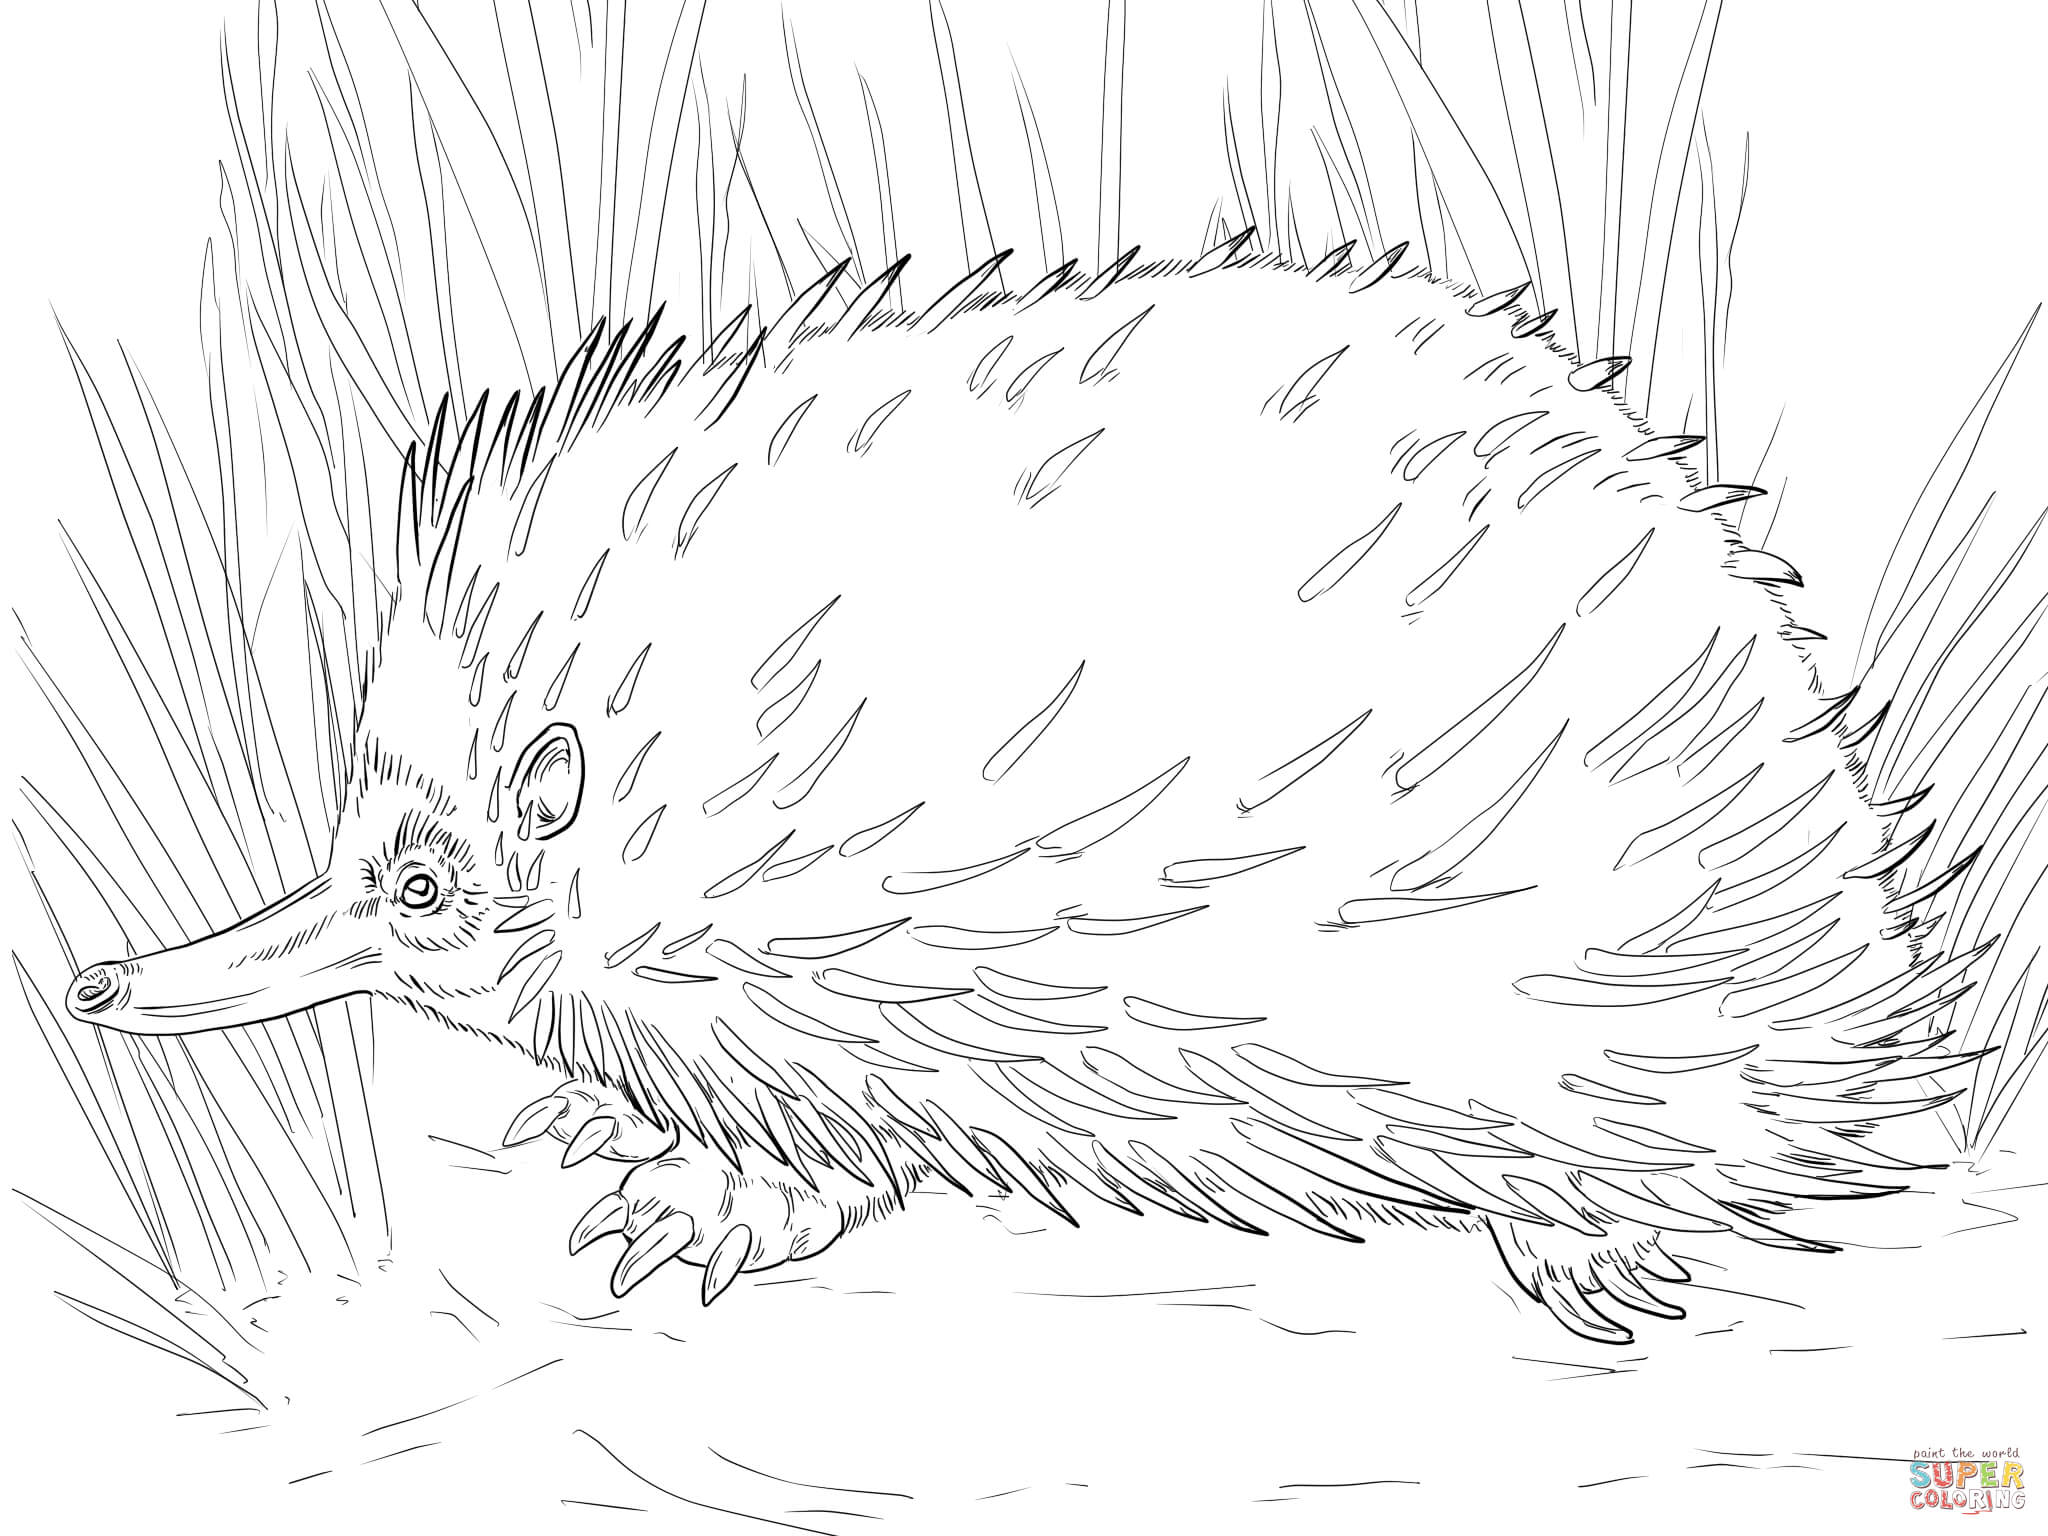 Echidna coloring #2, Download drawings